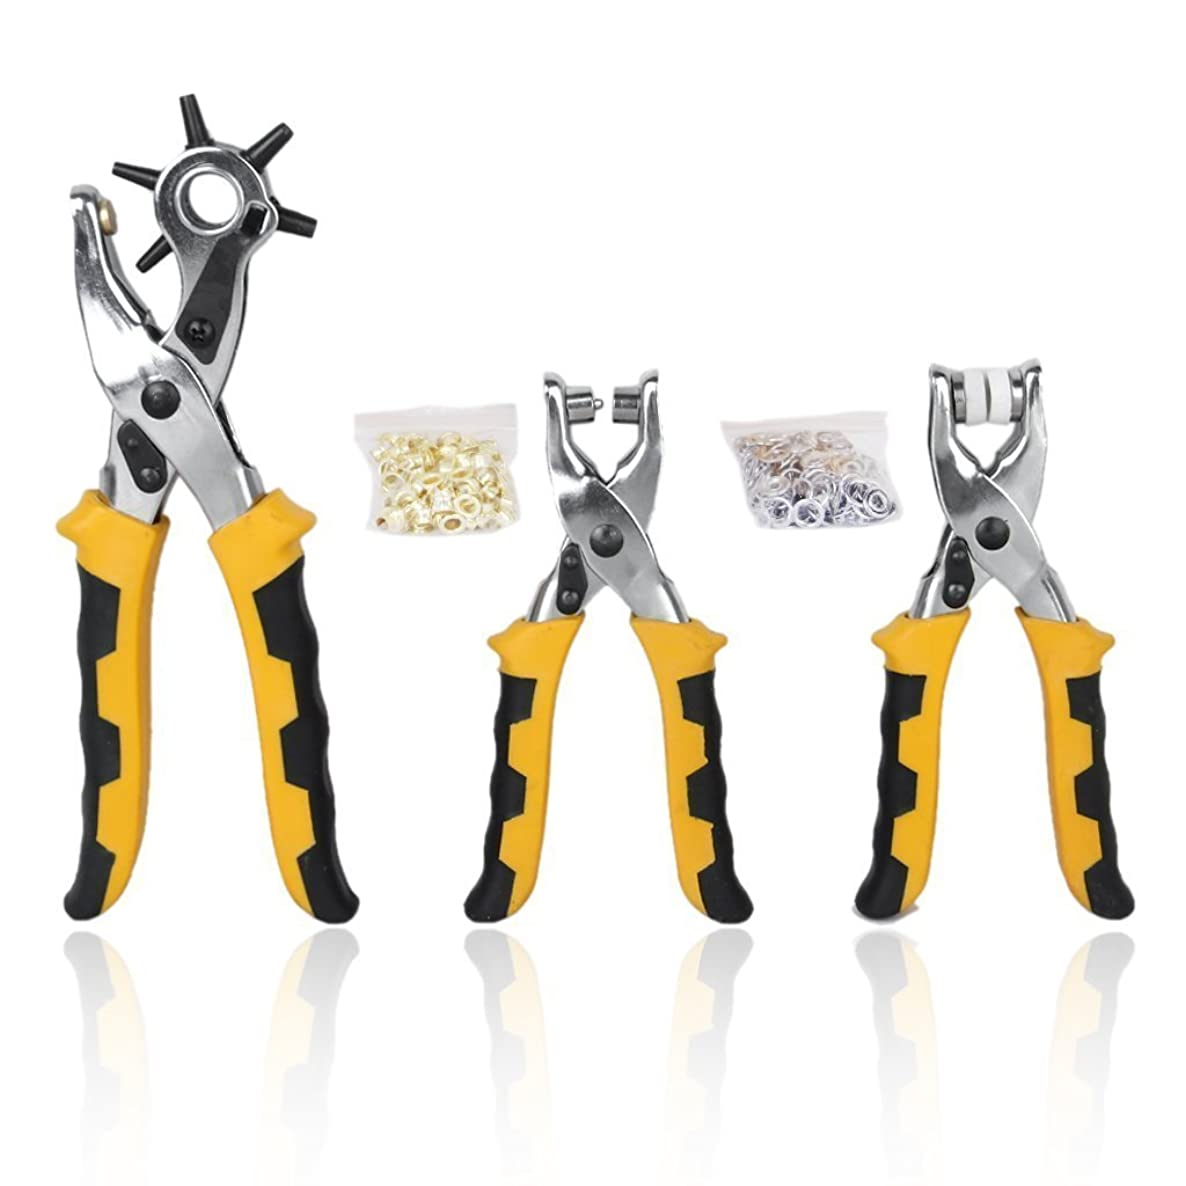 Hole Punch Plier,3pcs Card Leather Belt Hole Punch Eyelet Plier Snap Button Setter Tool Kit